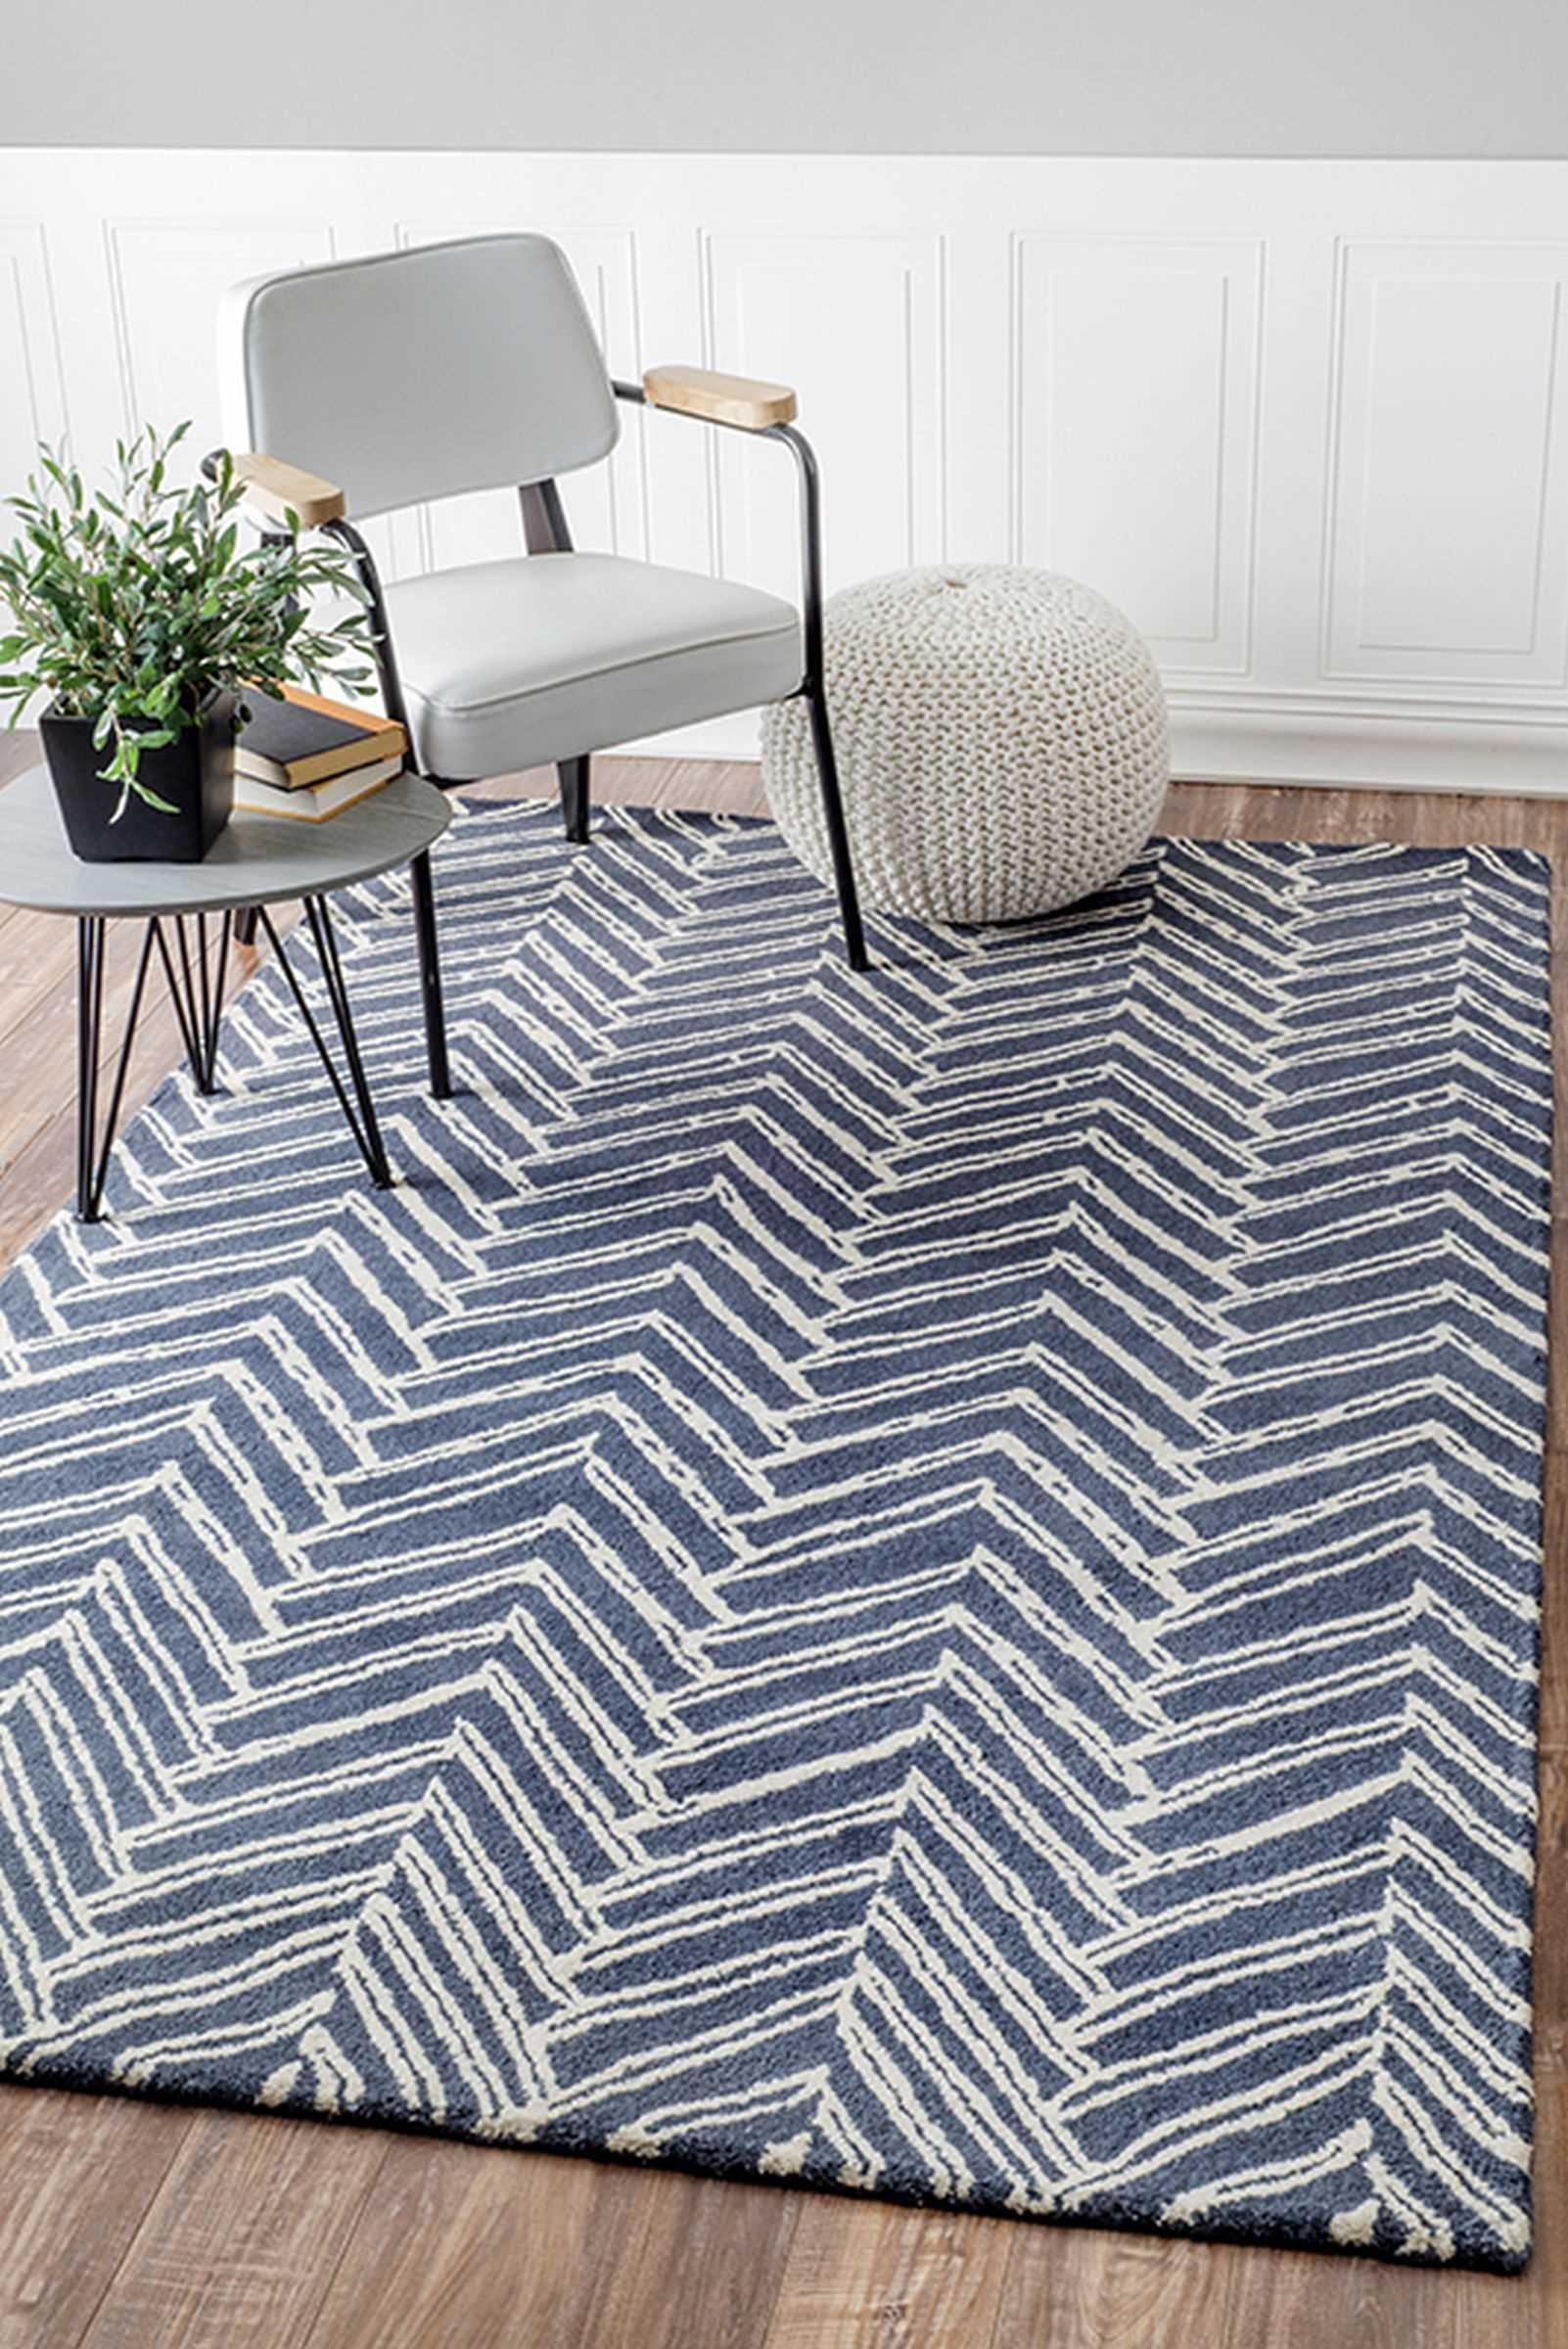 Rugs usa area rugs in many styles including contemporary - Pictures of area rugs in living rooms ...